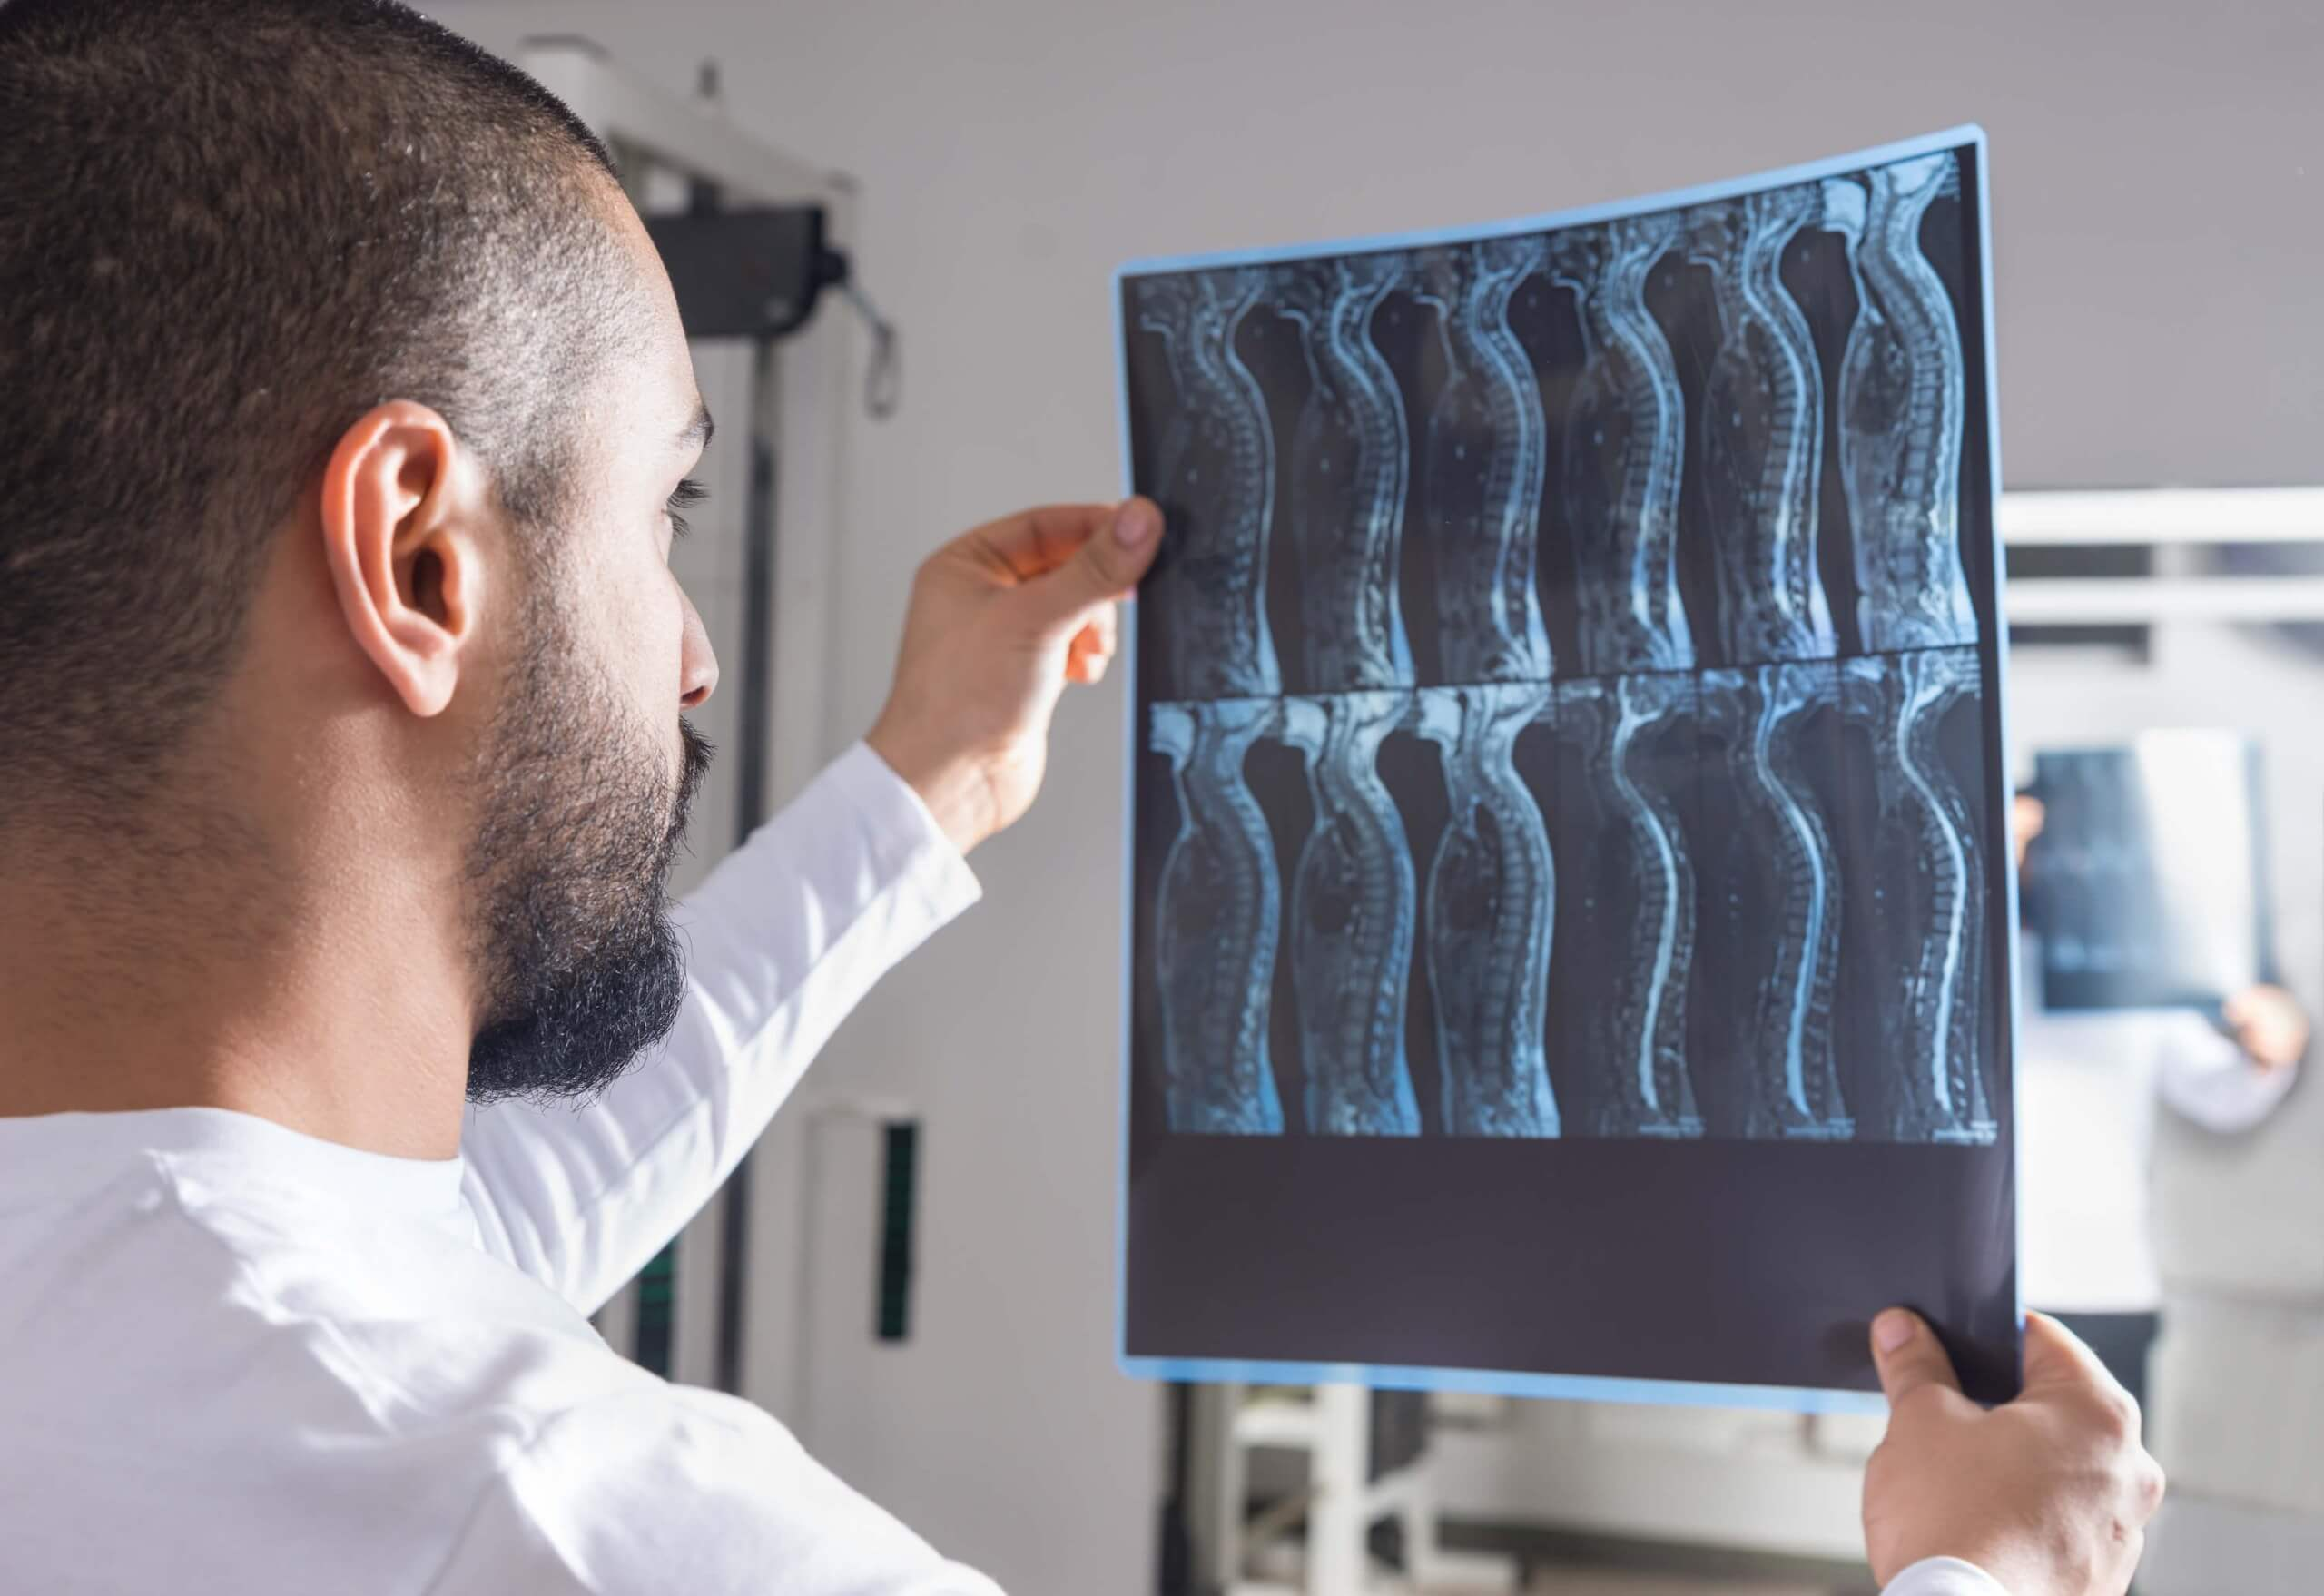 Intel looking to use neural networks to repair spinal cord injuries